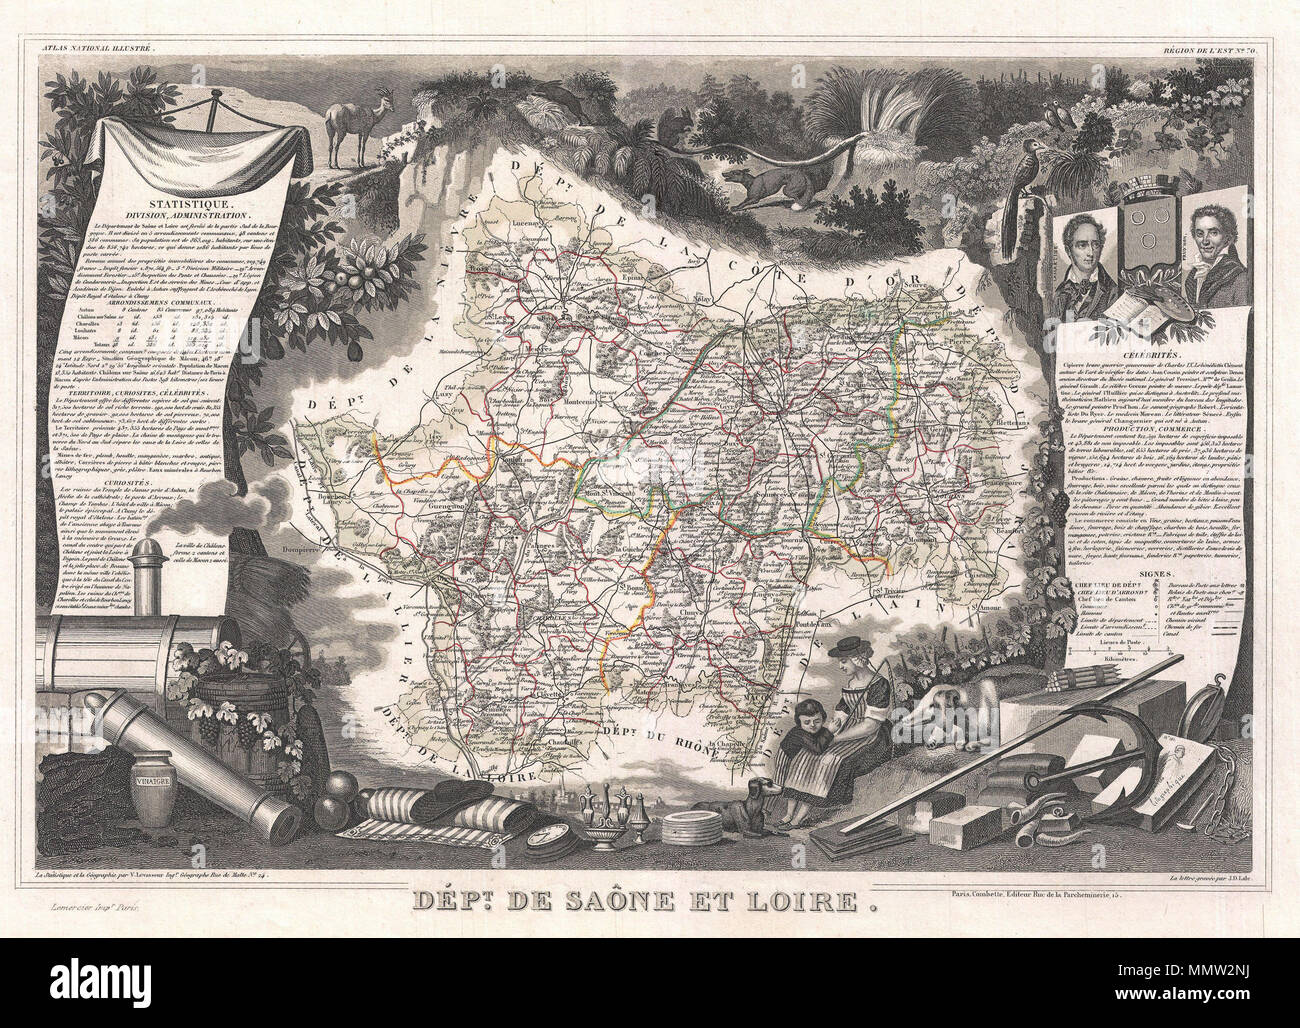 .  English: This is a fascinating 1852 map of the French department of Saone et Loire, France. Part of France's important Burgundy or Bourgogne Wine Region. Produces Mercurey and Givry among other red wines. Around Mâcon are whites of fine quality, notably Rully, Montagny, and also Pouilly-Fuissé, a dry, heady wine with much bouquet. The map proper is surrounded by elaborate decorative engravings designed to illustrate both the natural beauty and trade richness of the land. There is a short textual history of the regions depicted on both the left and right sides of the map. Published by V. Lev - Stock Image